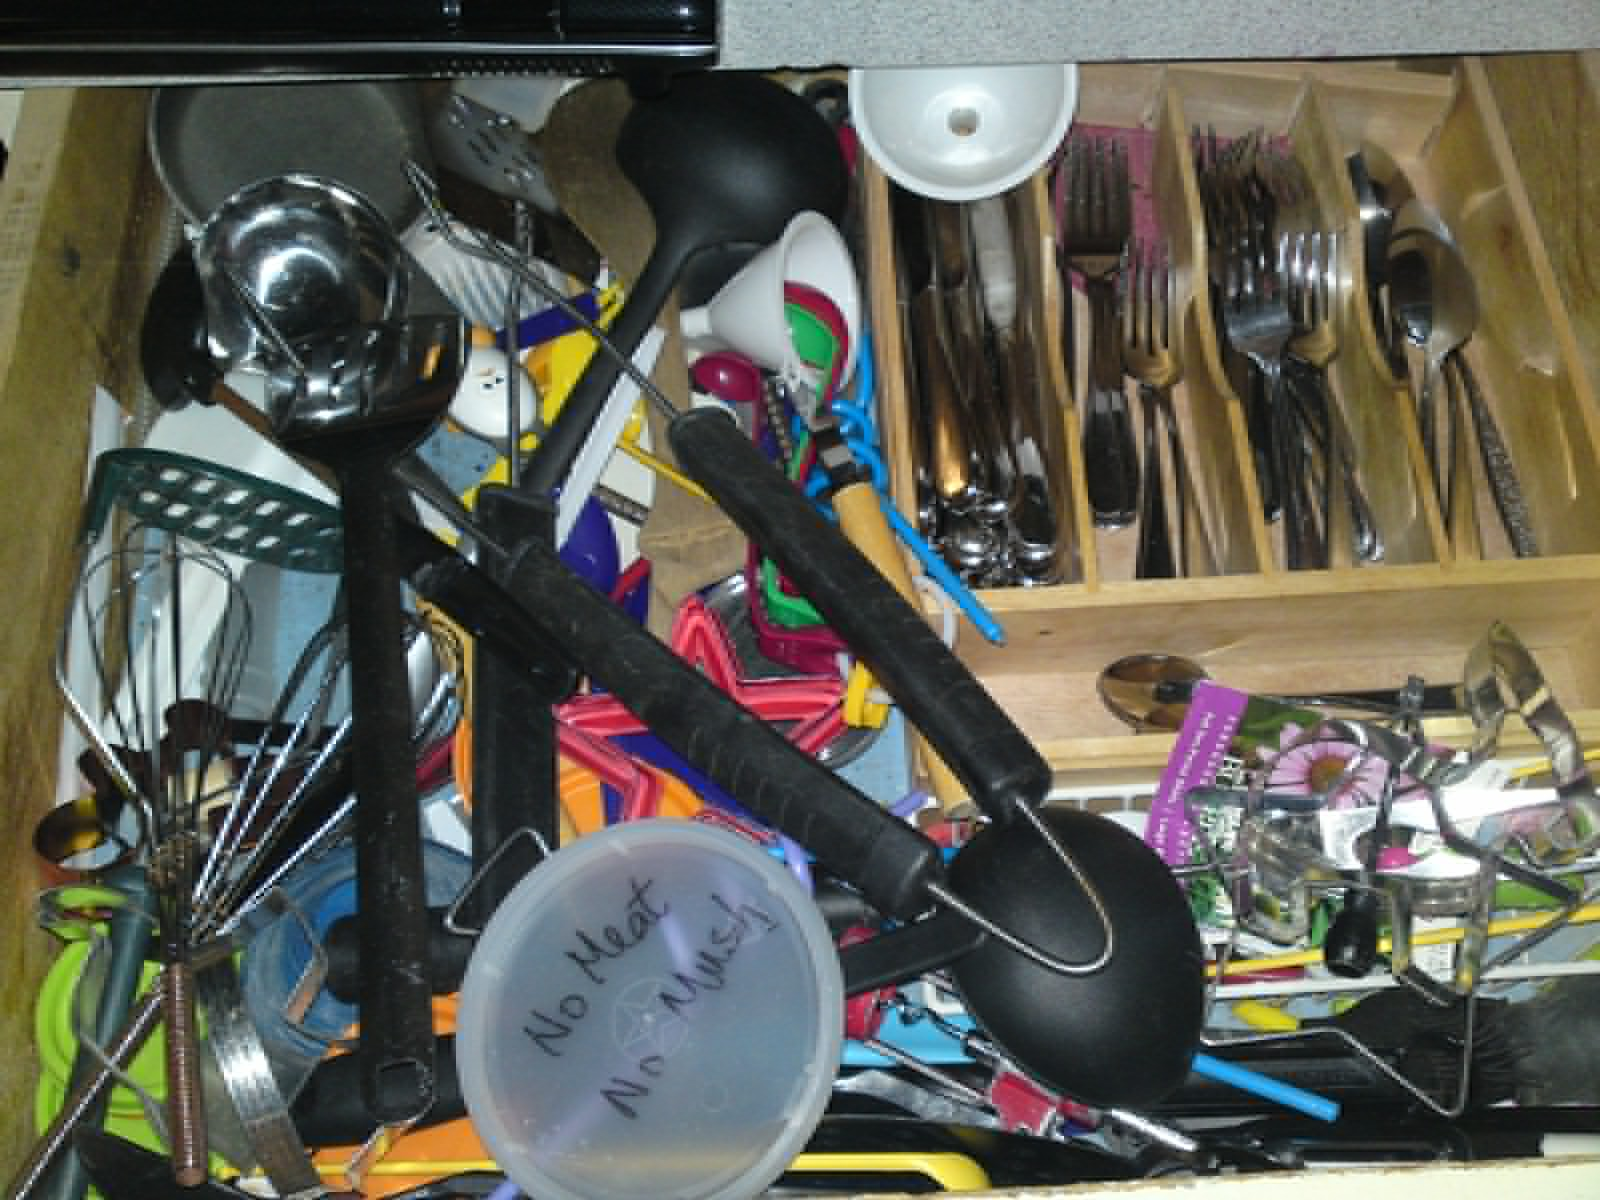 My Silverware Drawer, Before